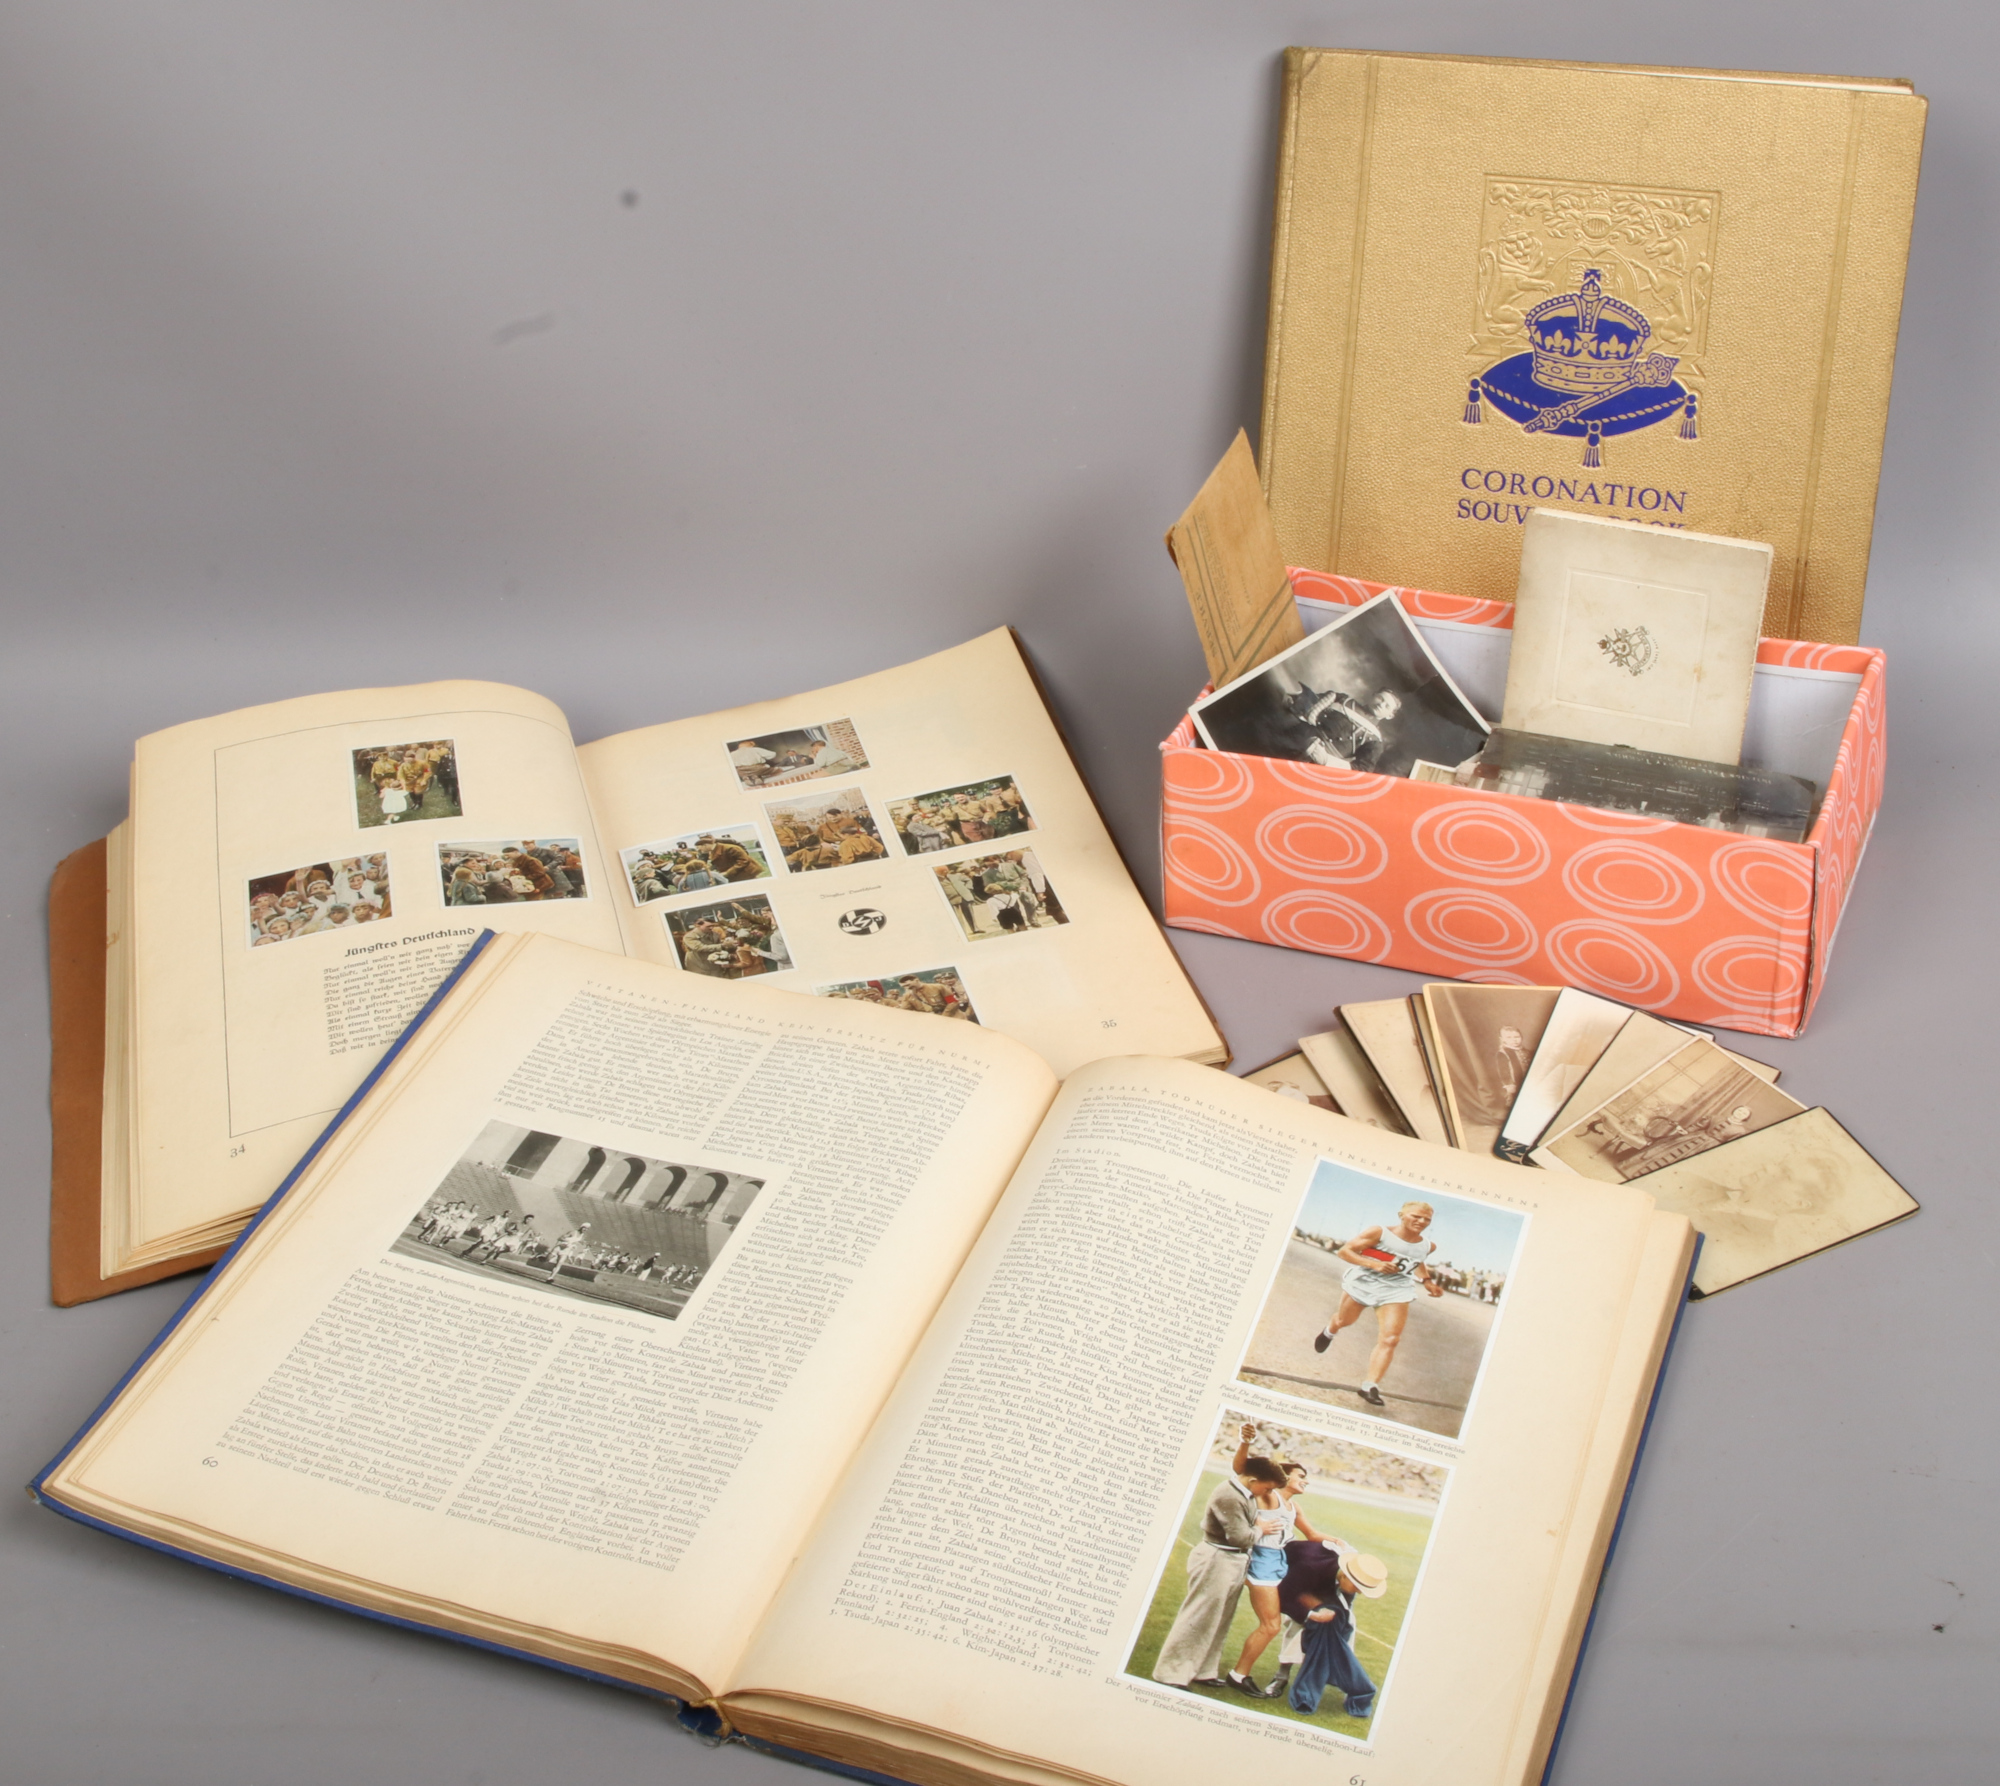 Lot 35 - A box of vintage photographs, along with three vintage books Coronation Souvenir 1937, Olympia